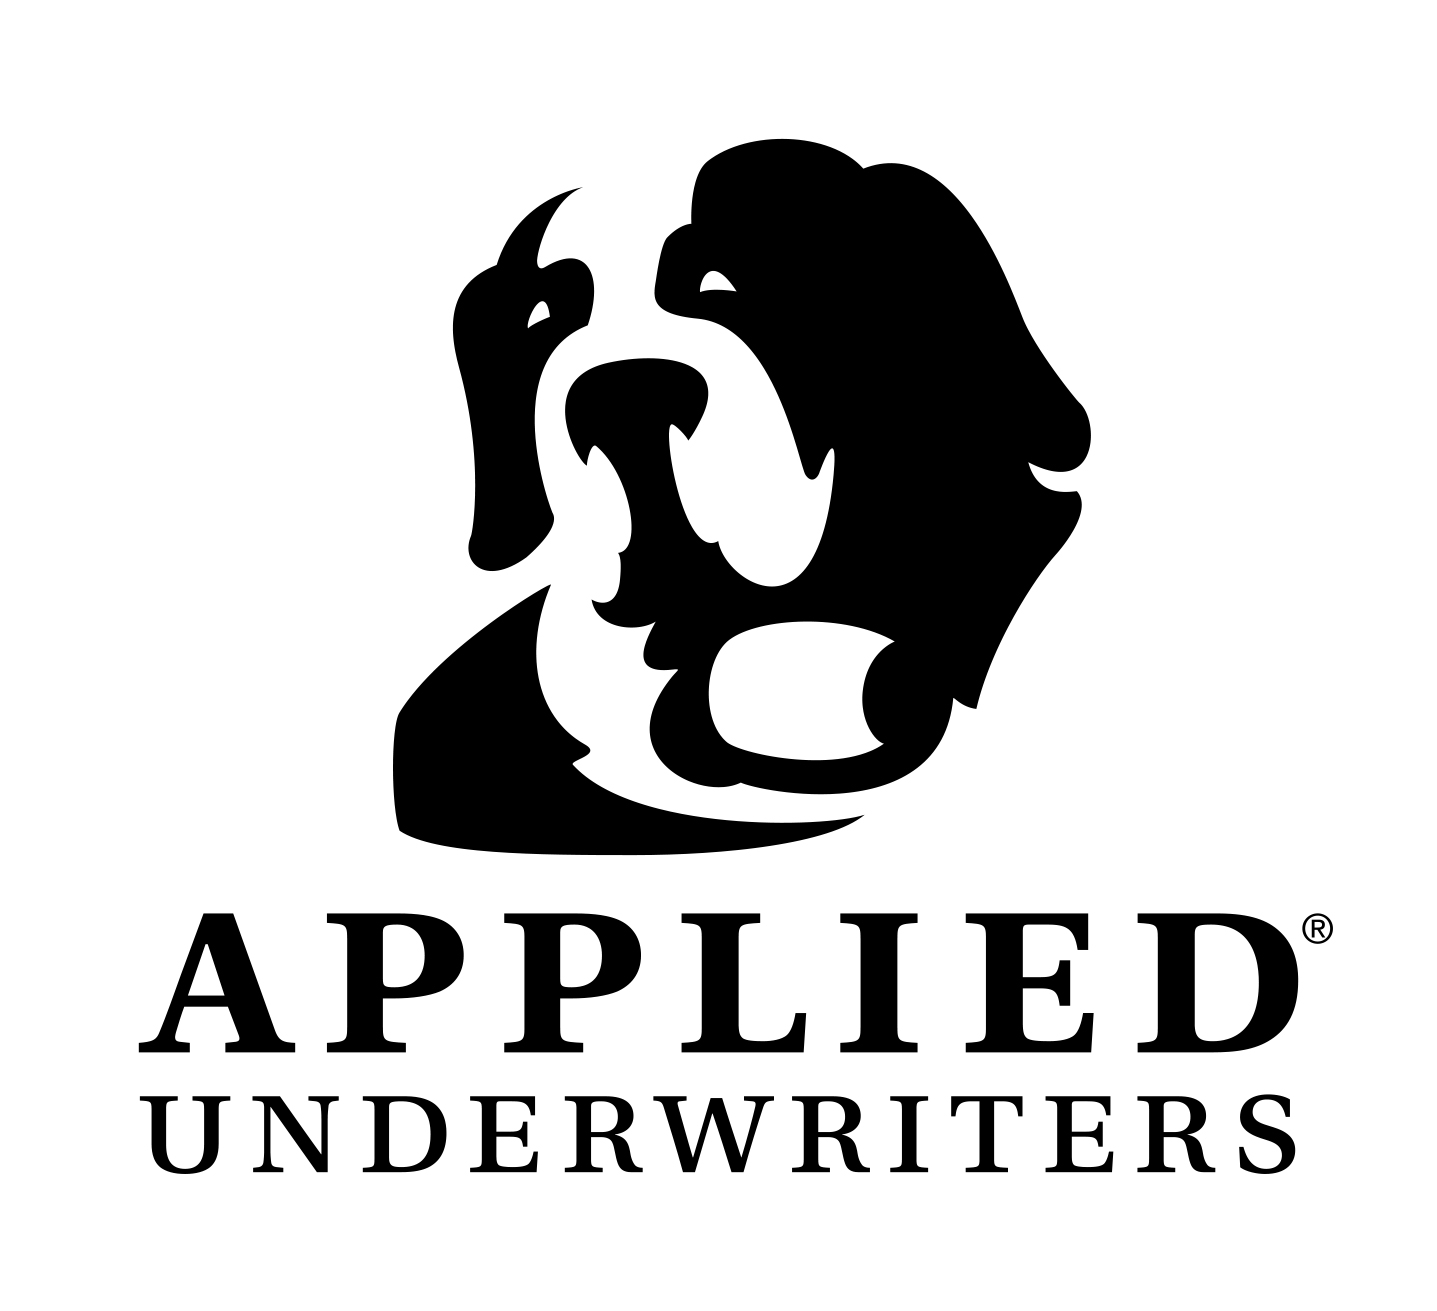 Applied Underwriters Expands Workers' Compensation